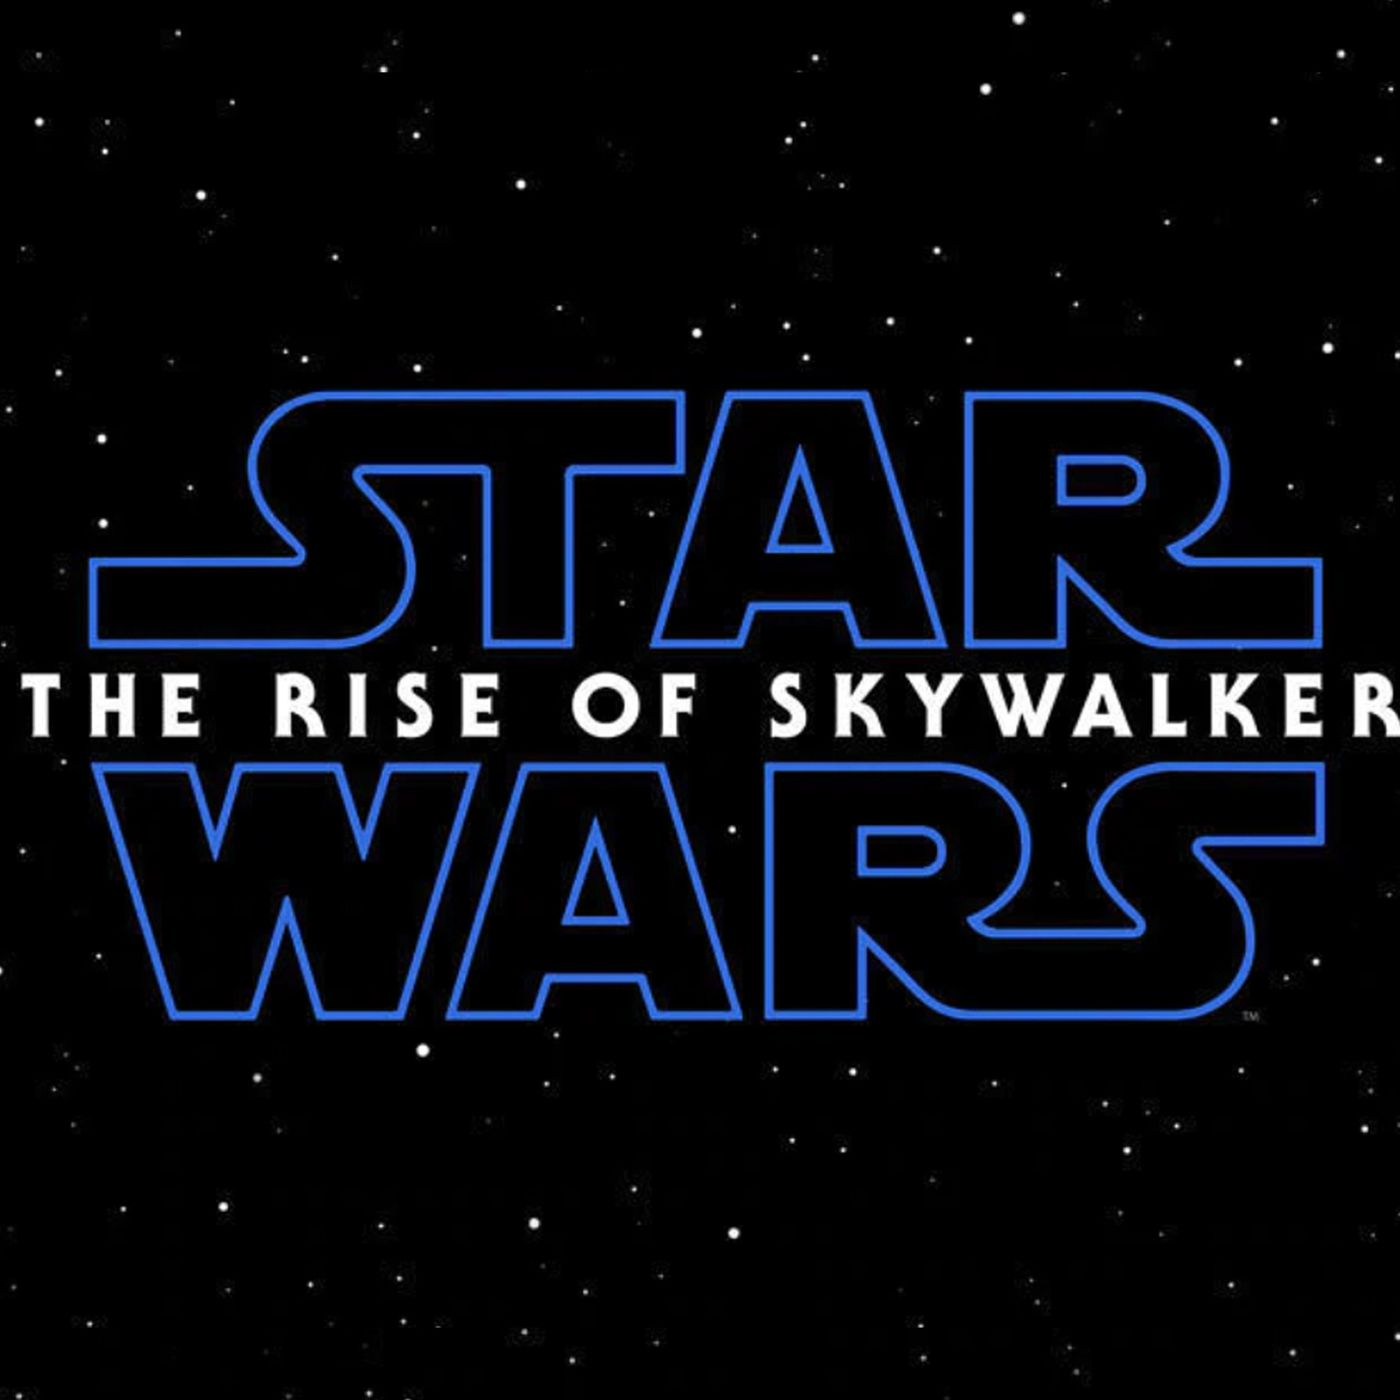 Watch The First Trailer For Star Wars The Rise Of Skywalker The Verge